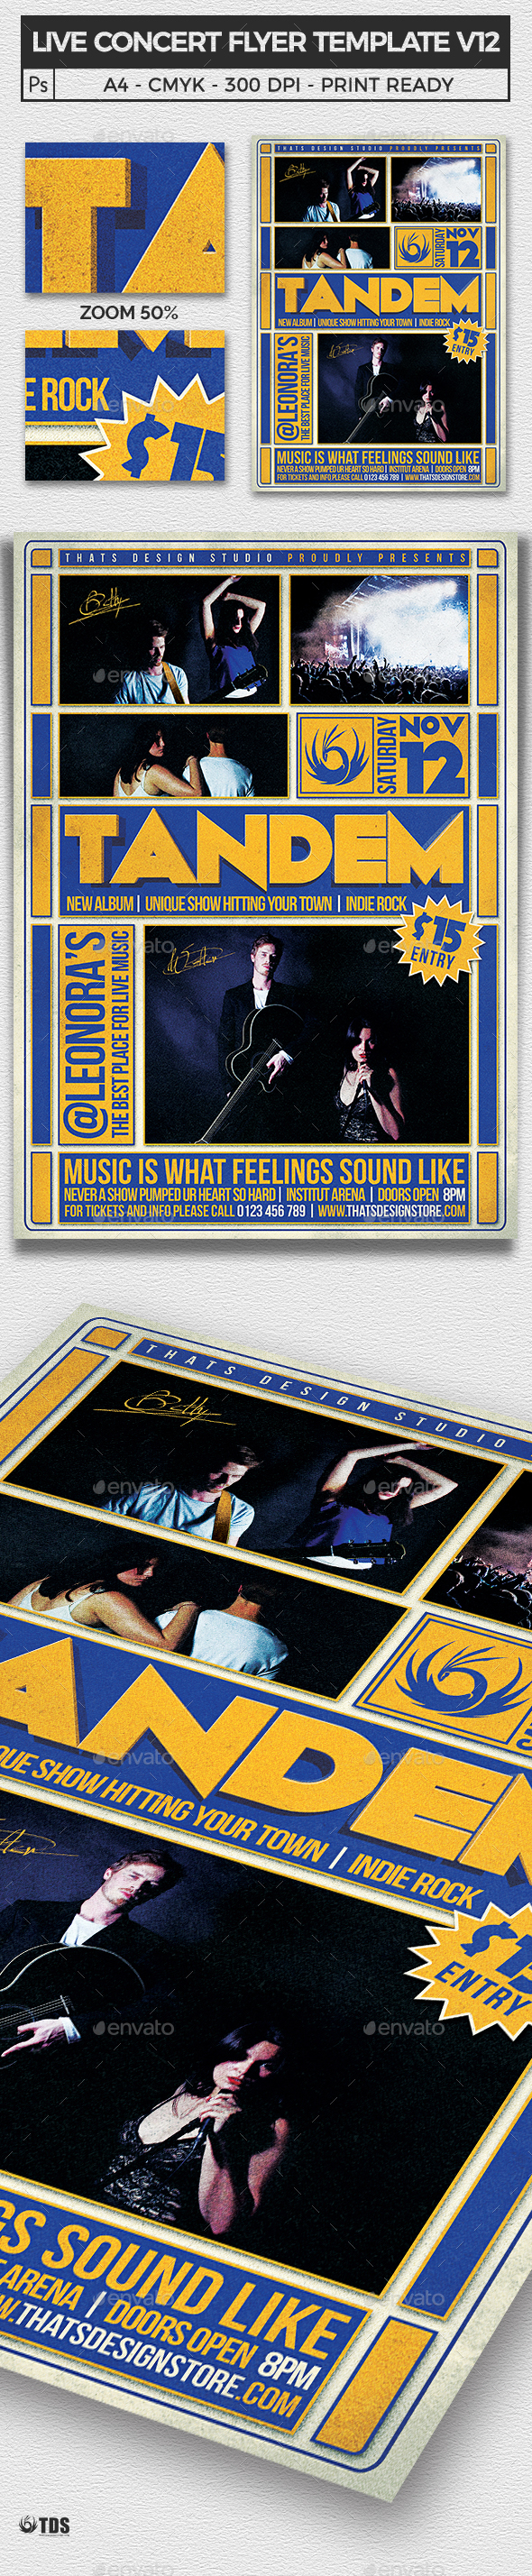 Live concert Flyer Template V12 - Concerts Events